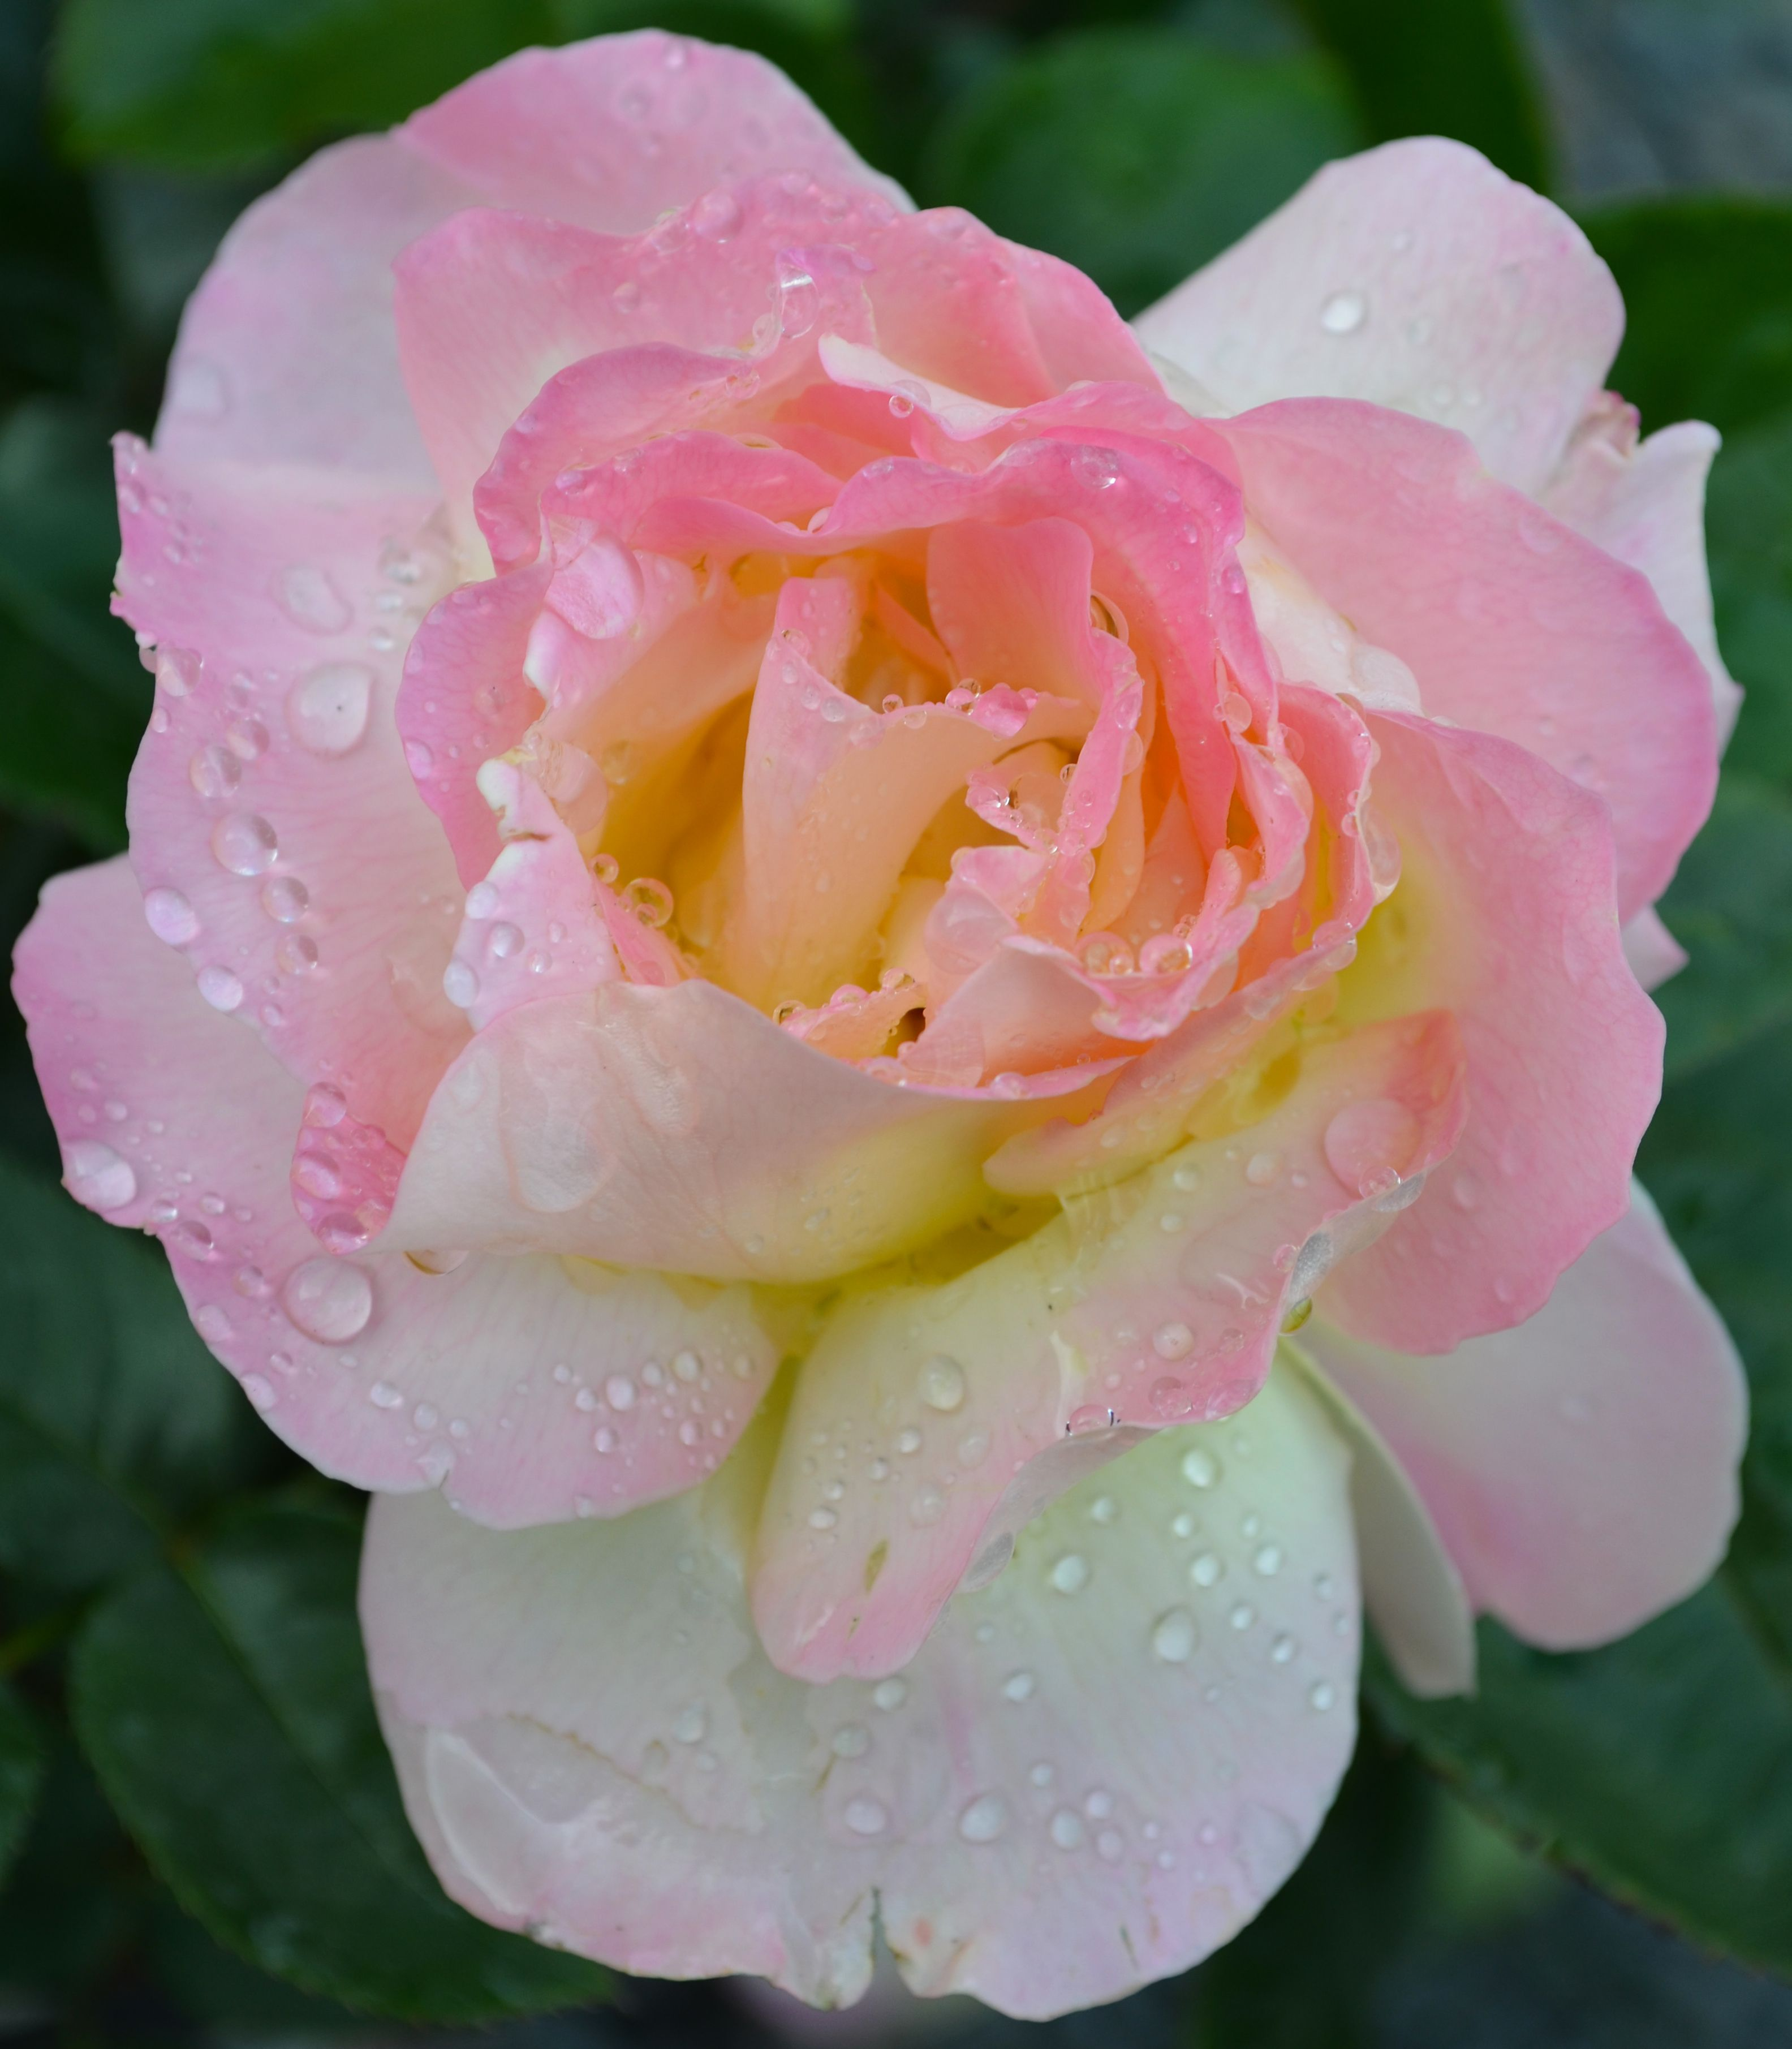 The Peace Rose Is A Subtle Beauty With White Petals Tipped With Pink